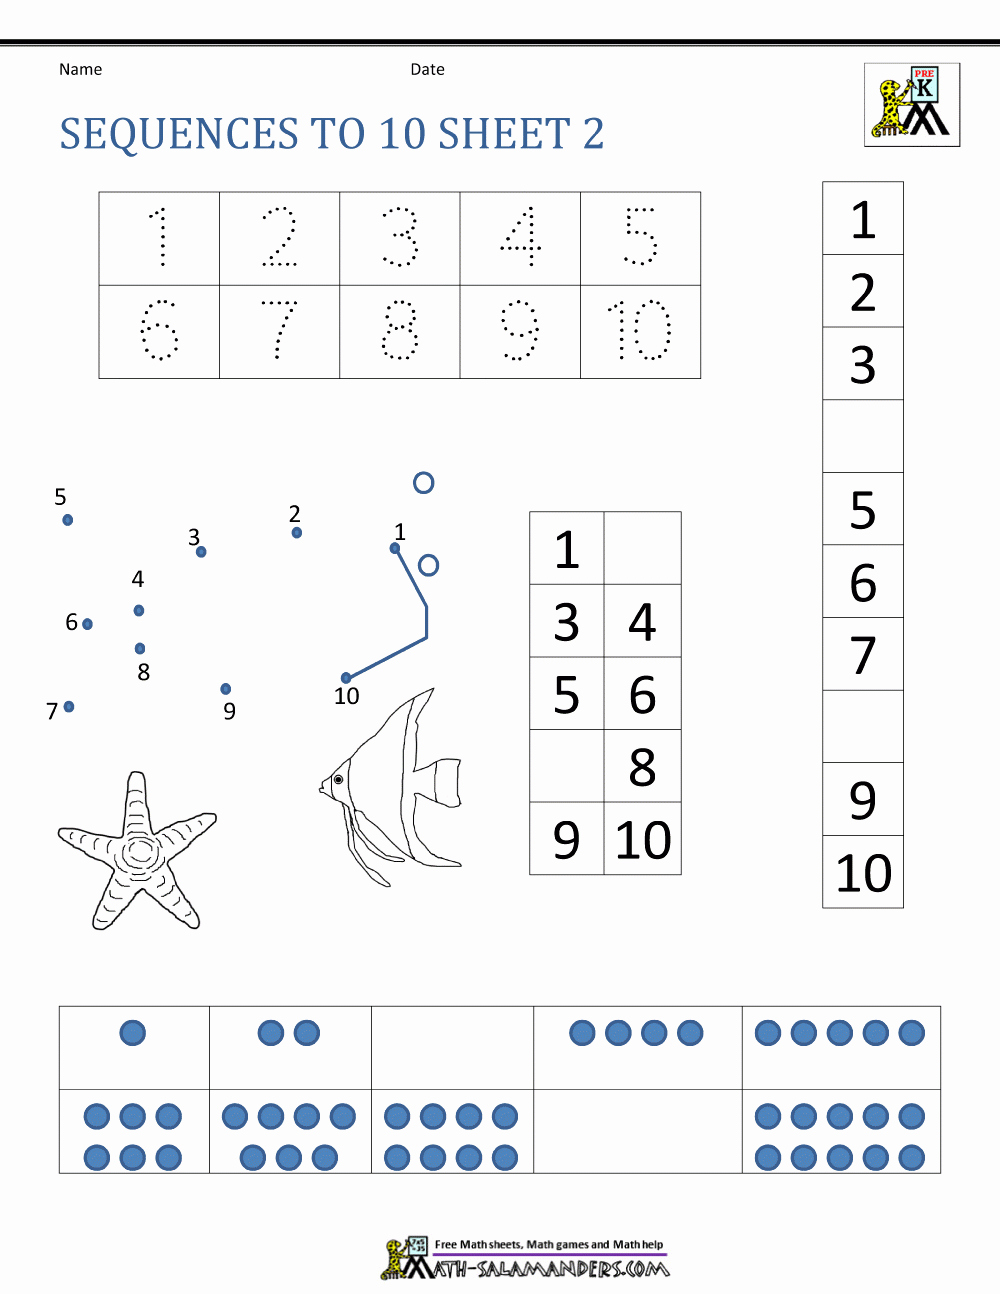 Sequence Worksheets 3rd Grade Beautiful Number Sequence Worksheets 3rd Grade